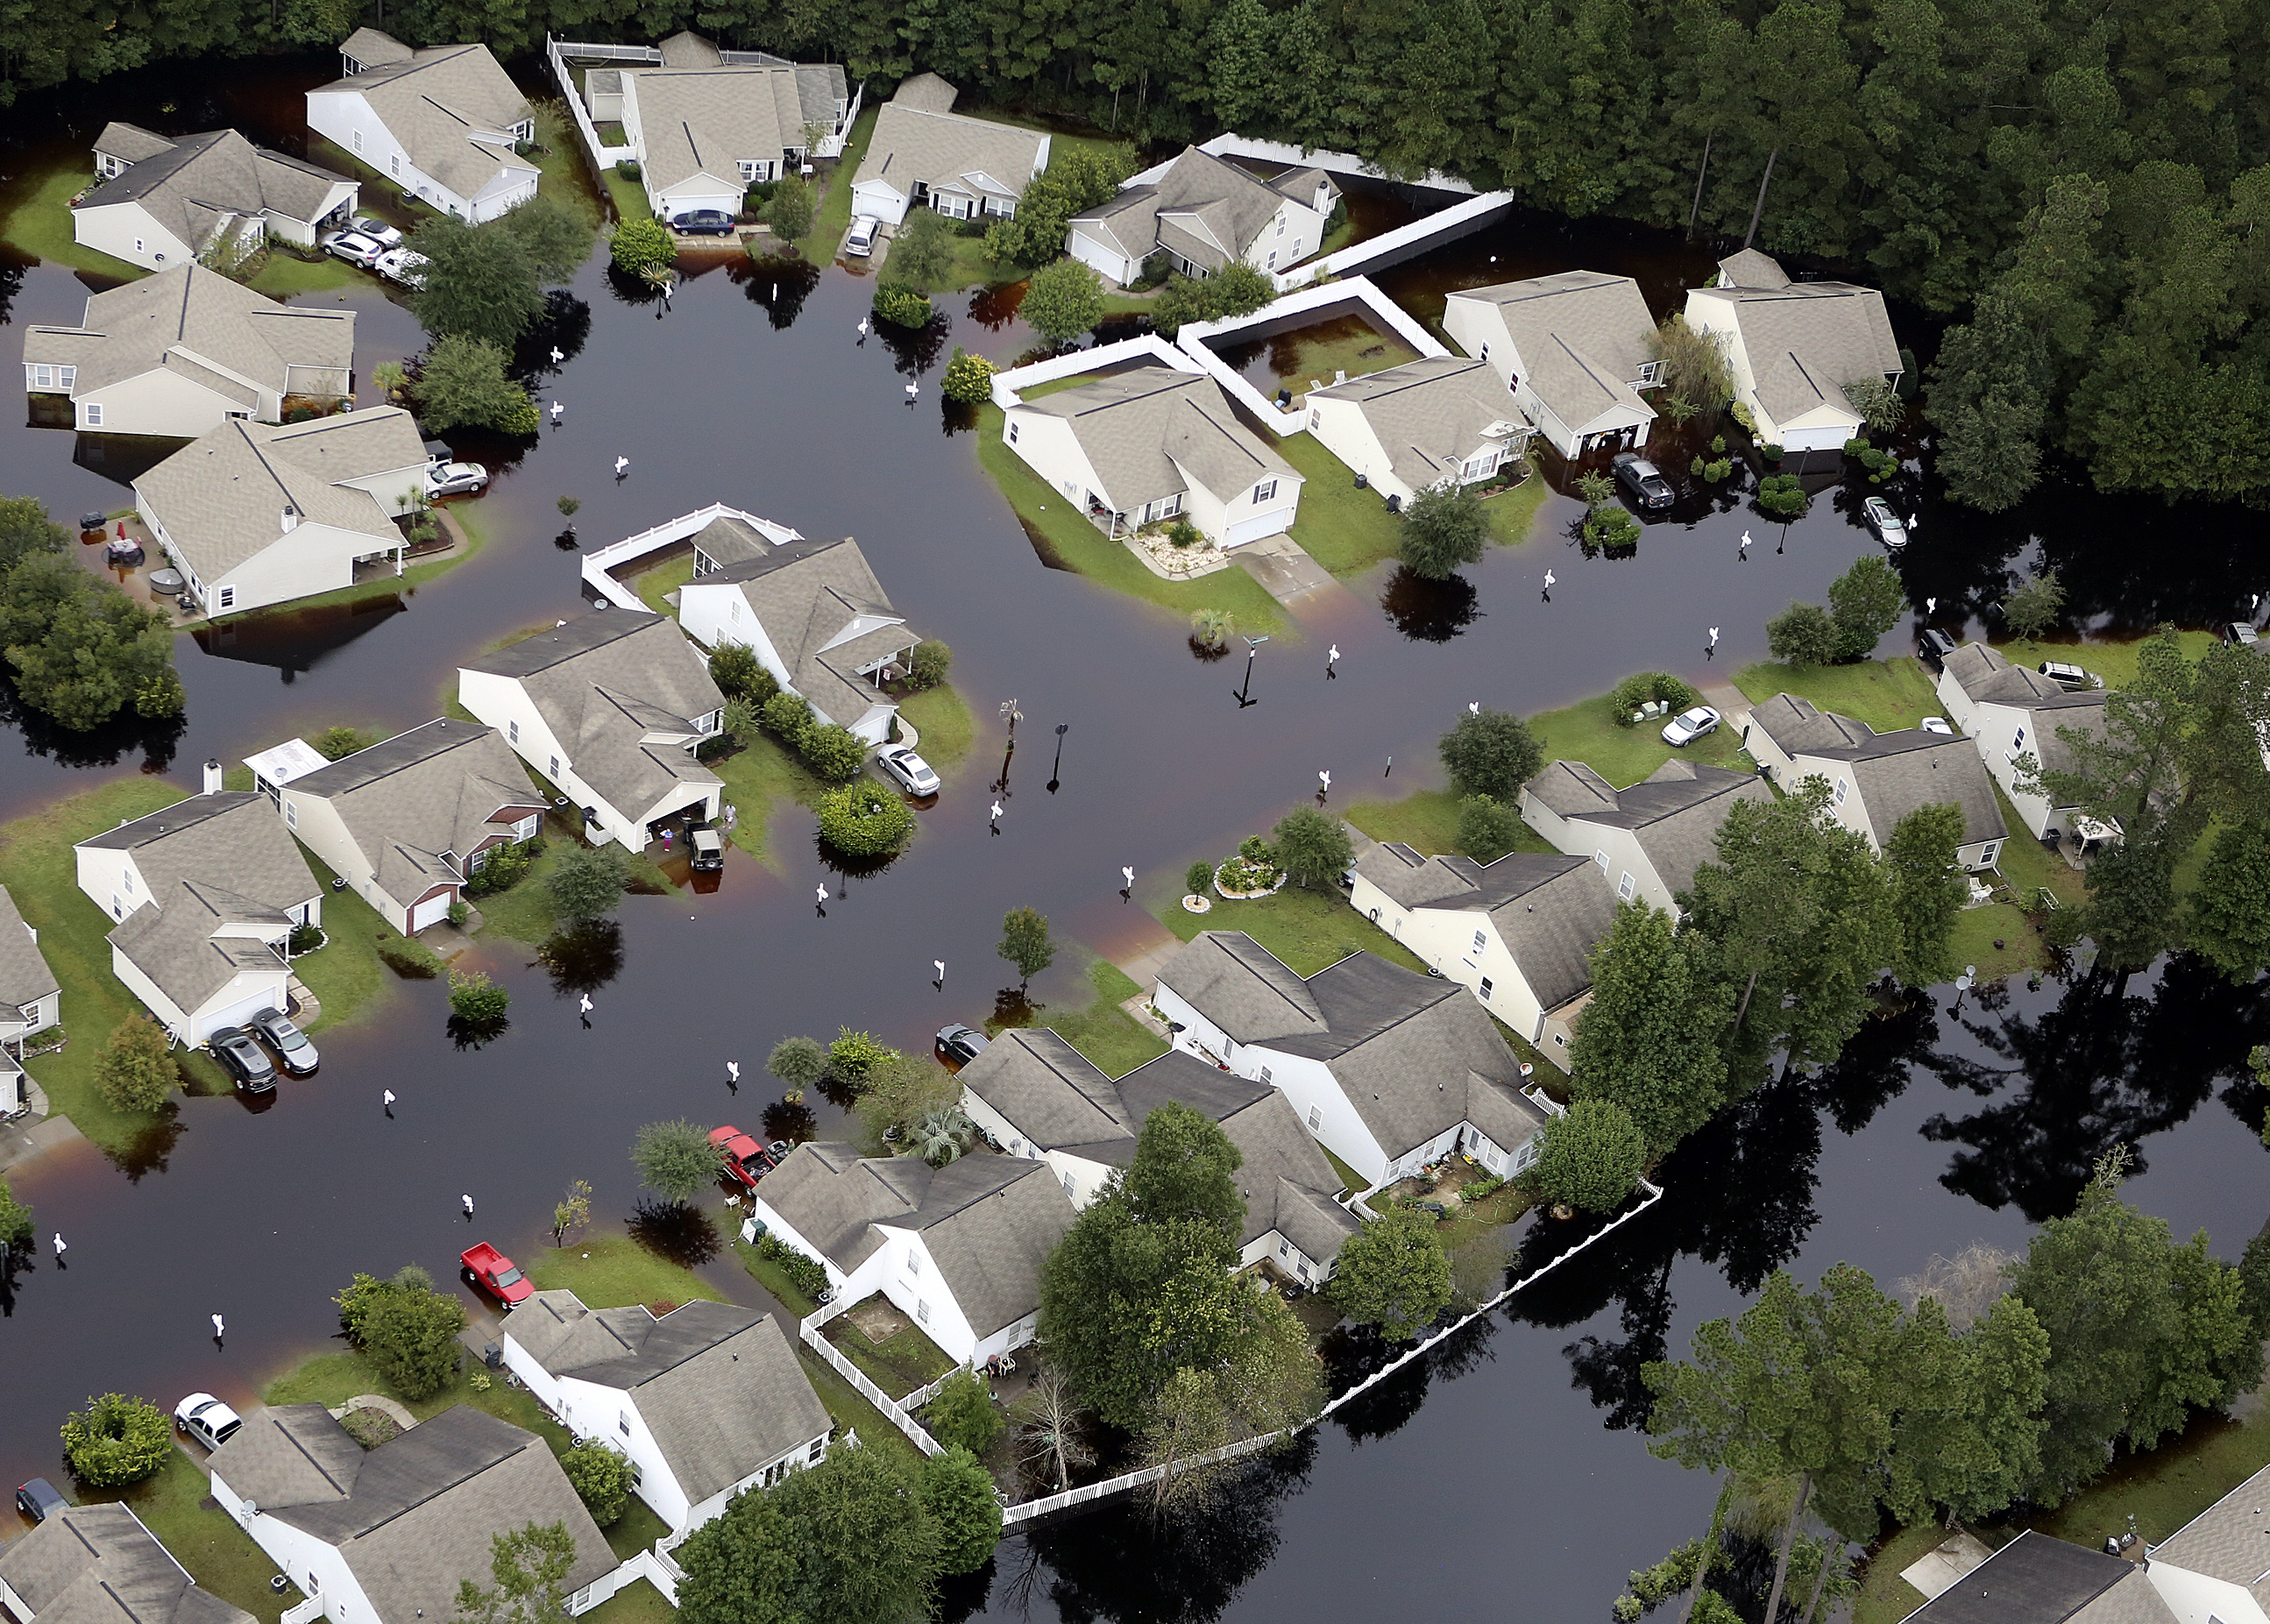 Insurers Bring Calm After The Storm As South Carolina Recovery Efforts Begin